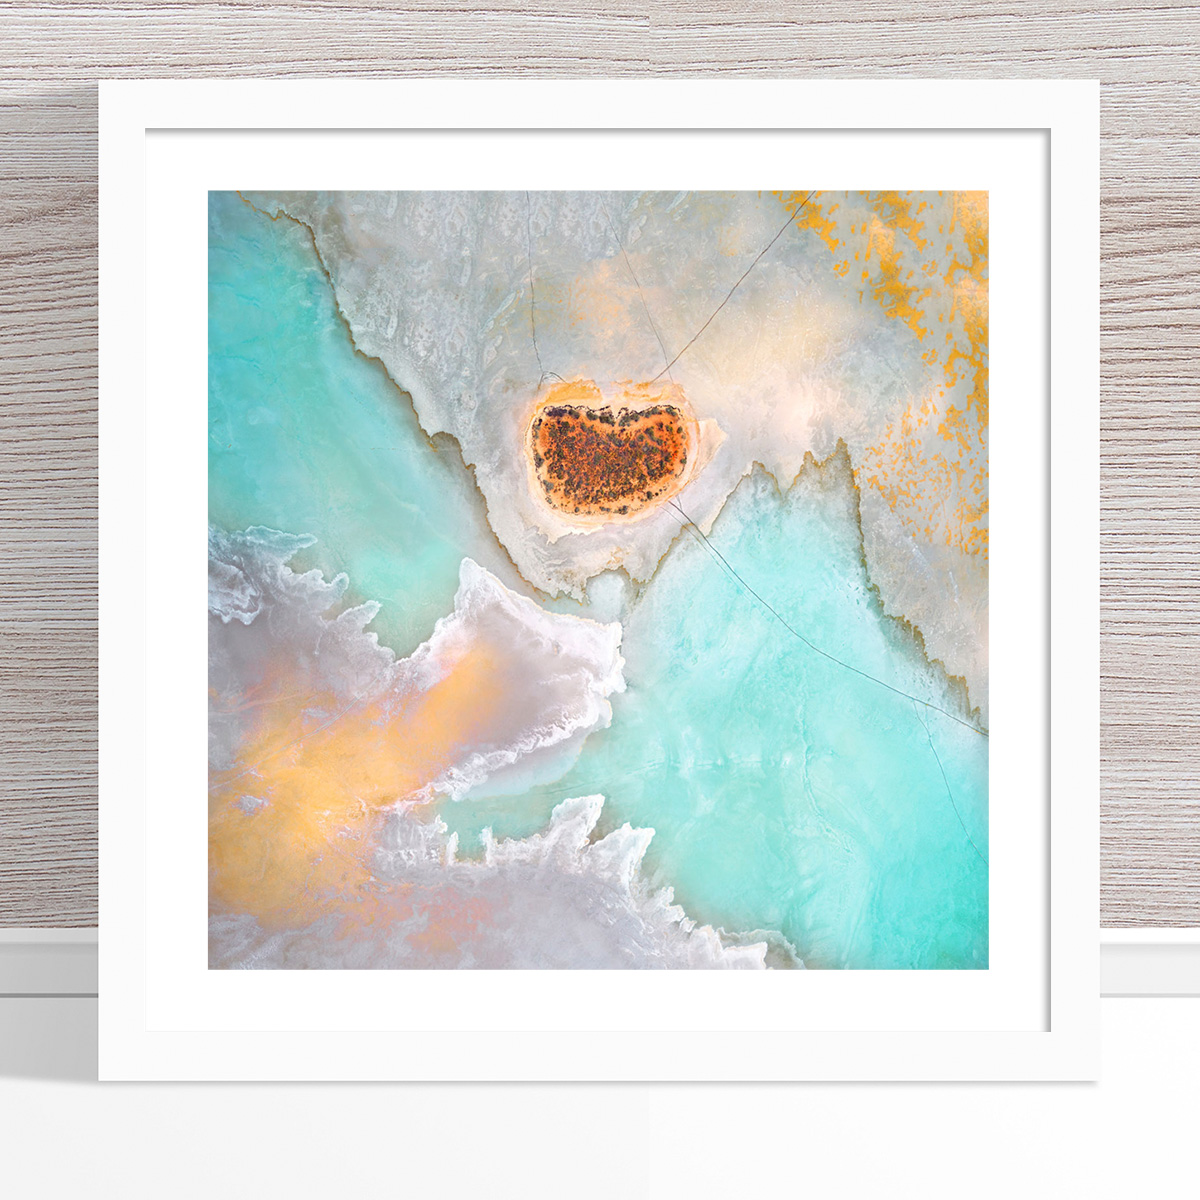 Chris Saunders - 'Aerial Salt 039' White Frame